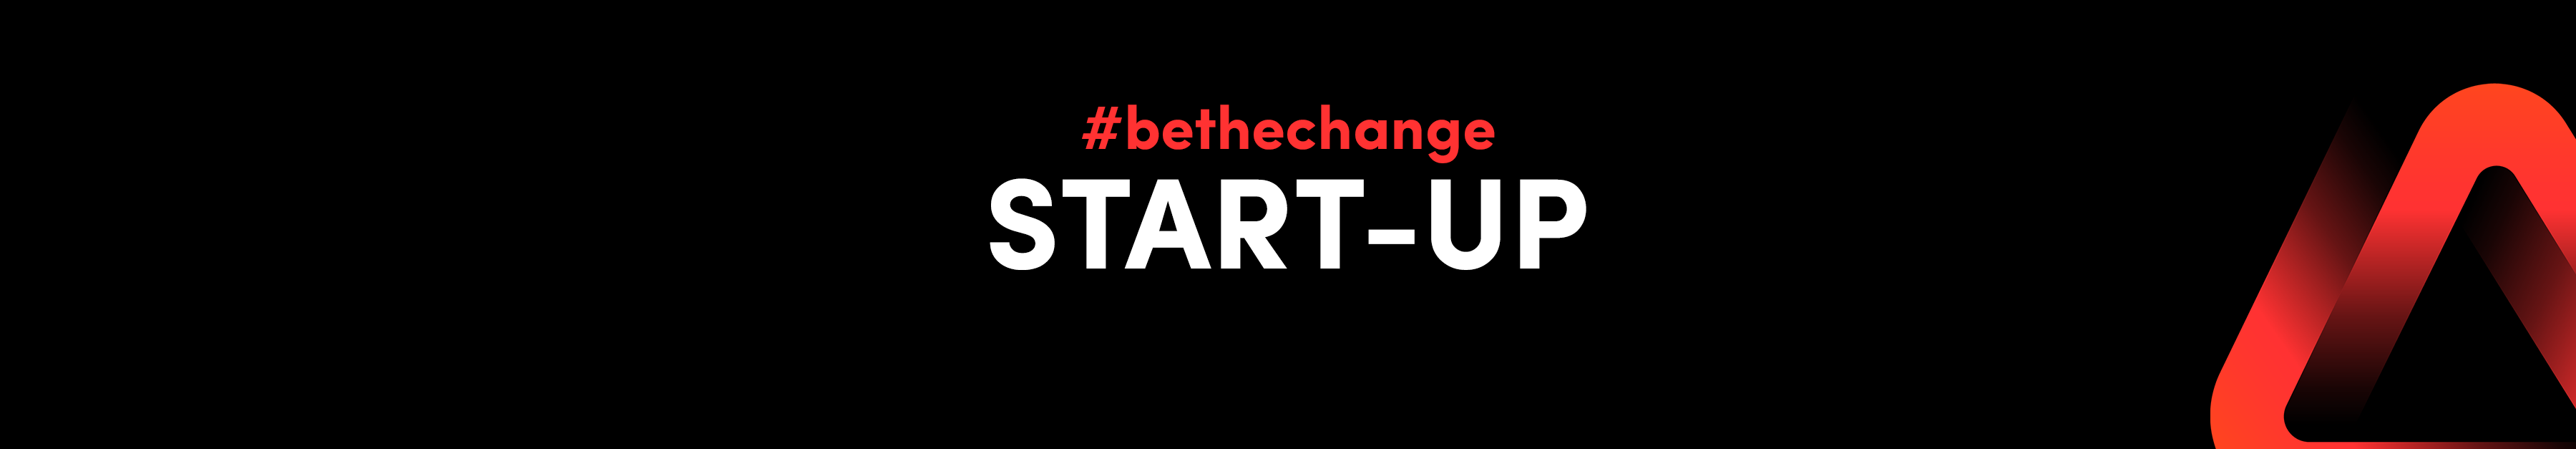 #bethechange Start-Up - Become a Start-Up member 1